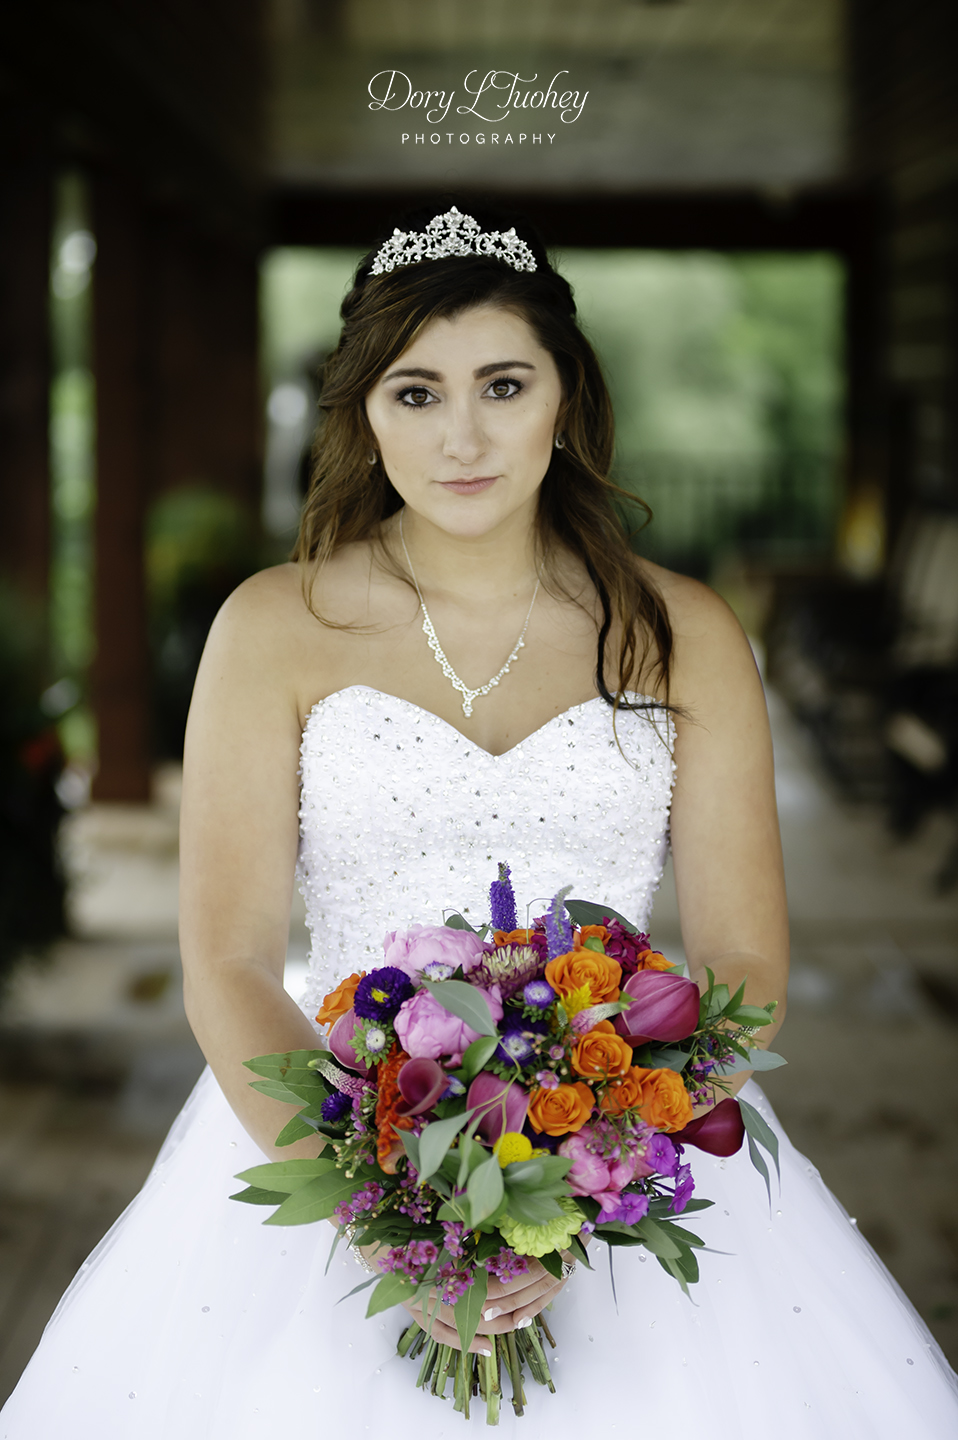 Green_Bay_wedding_photographer_olde_41_harley_first_look_dad_vandervest_bride_02.jpg